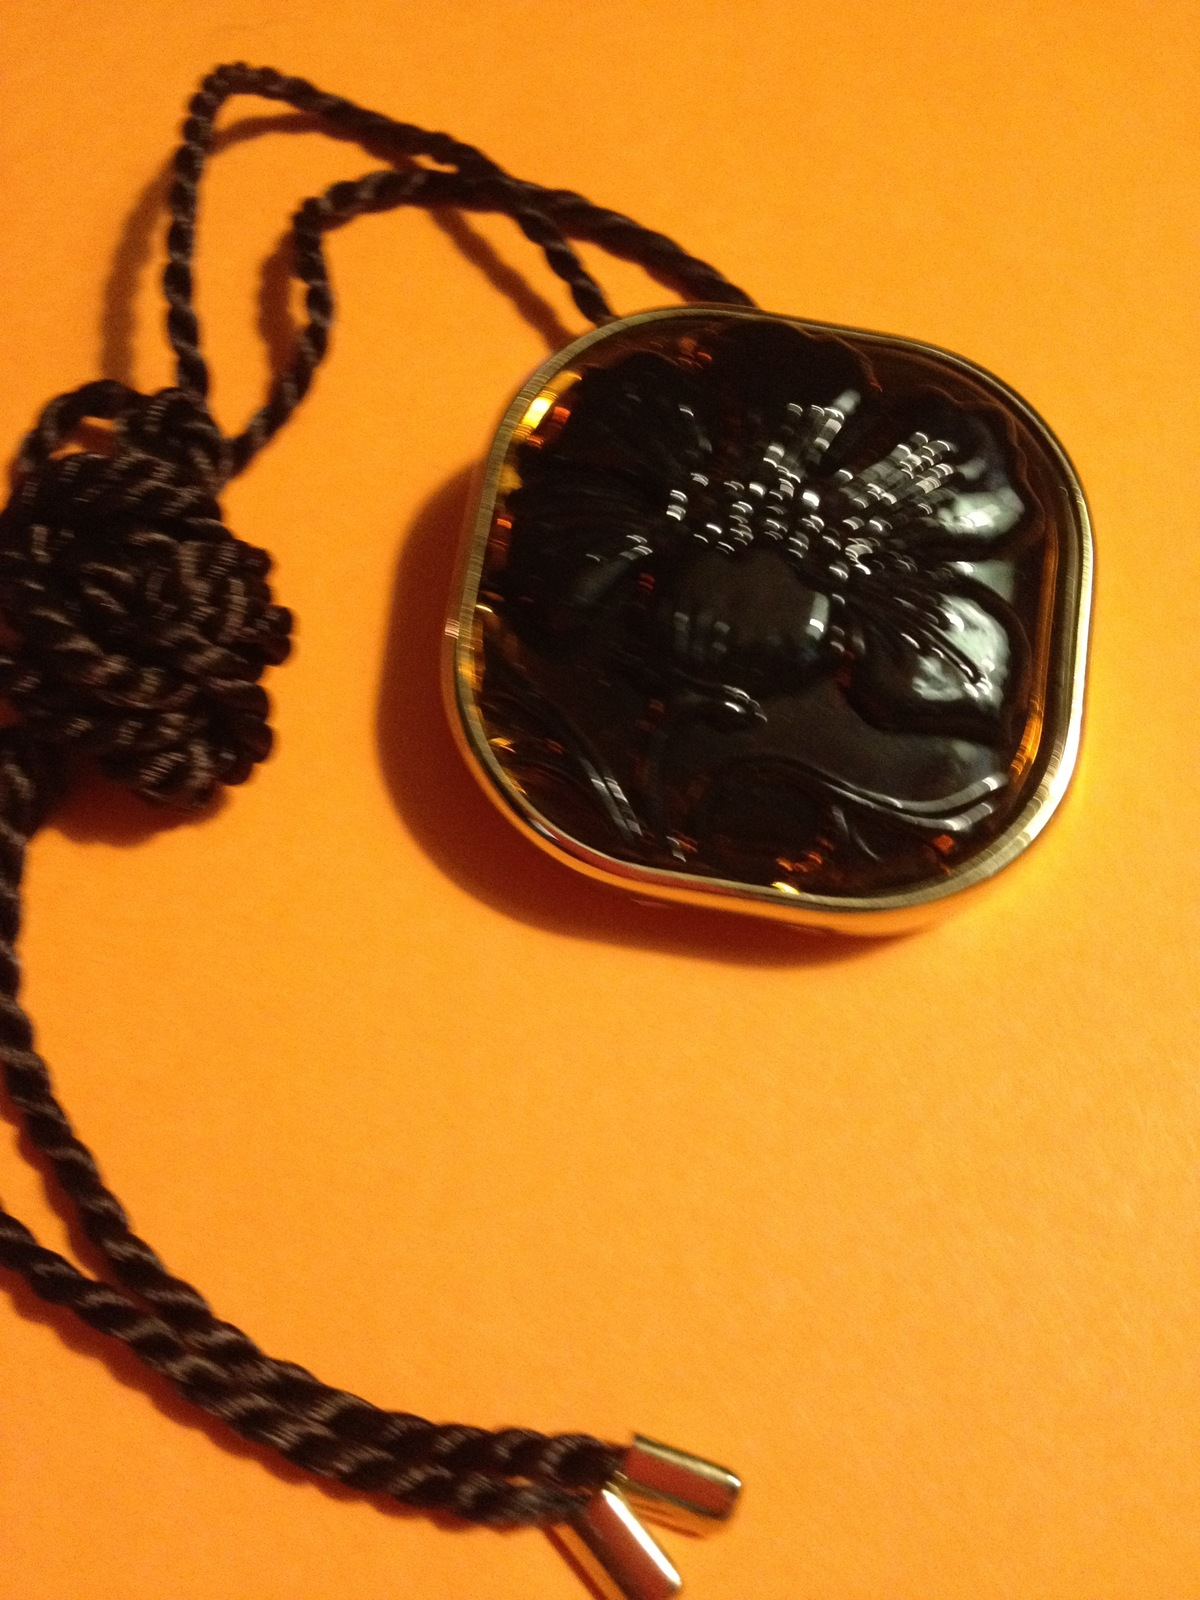 Clinique AROMATICS ELIXIR Solid Perfume NECKLACE - 40th Anniversary Ltd. Edition